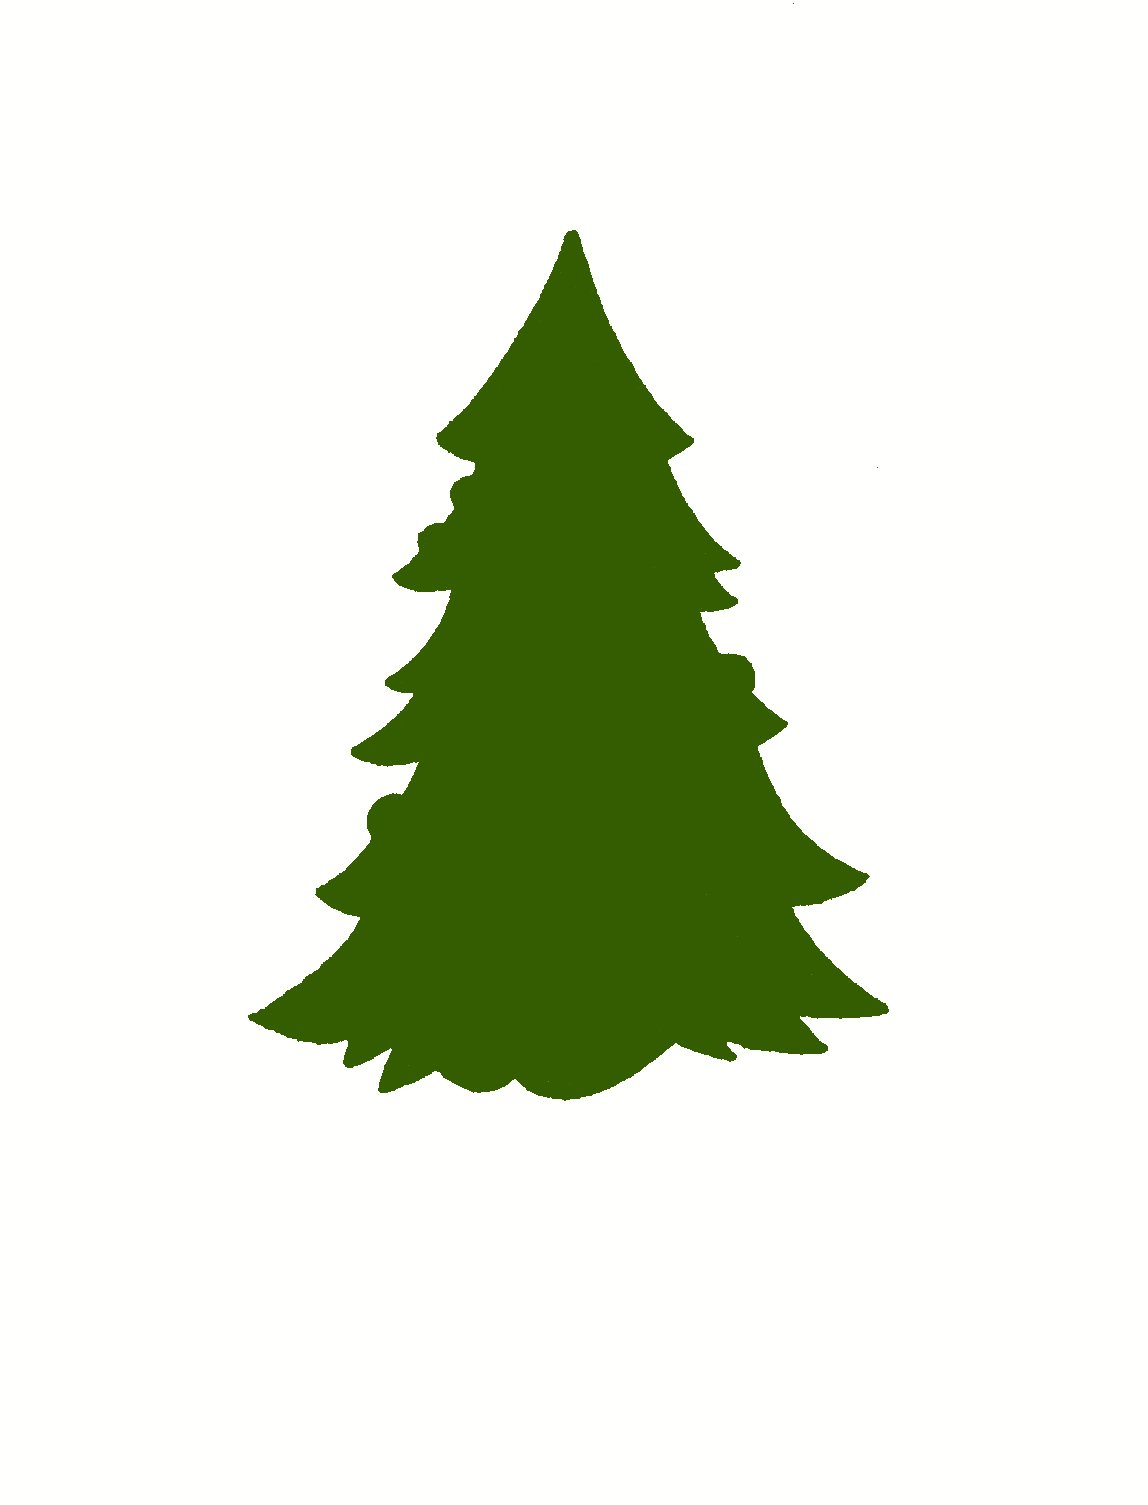 Green coffee cup christmas trees clipart vector png jpg royalty free library Free Xmas Tree Silhouette, Download Free Clip Art, Free Clip Art on ... jpg royalty free library